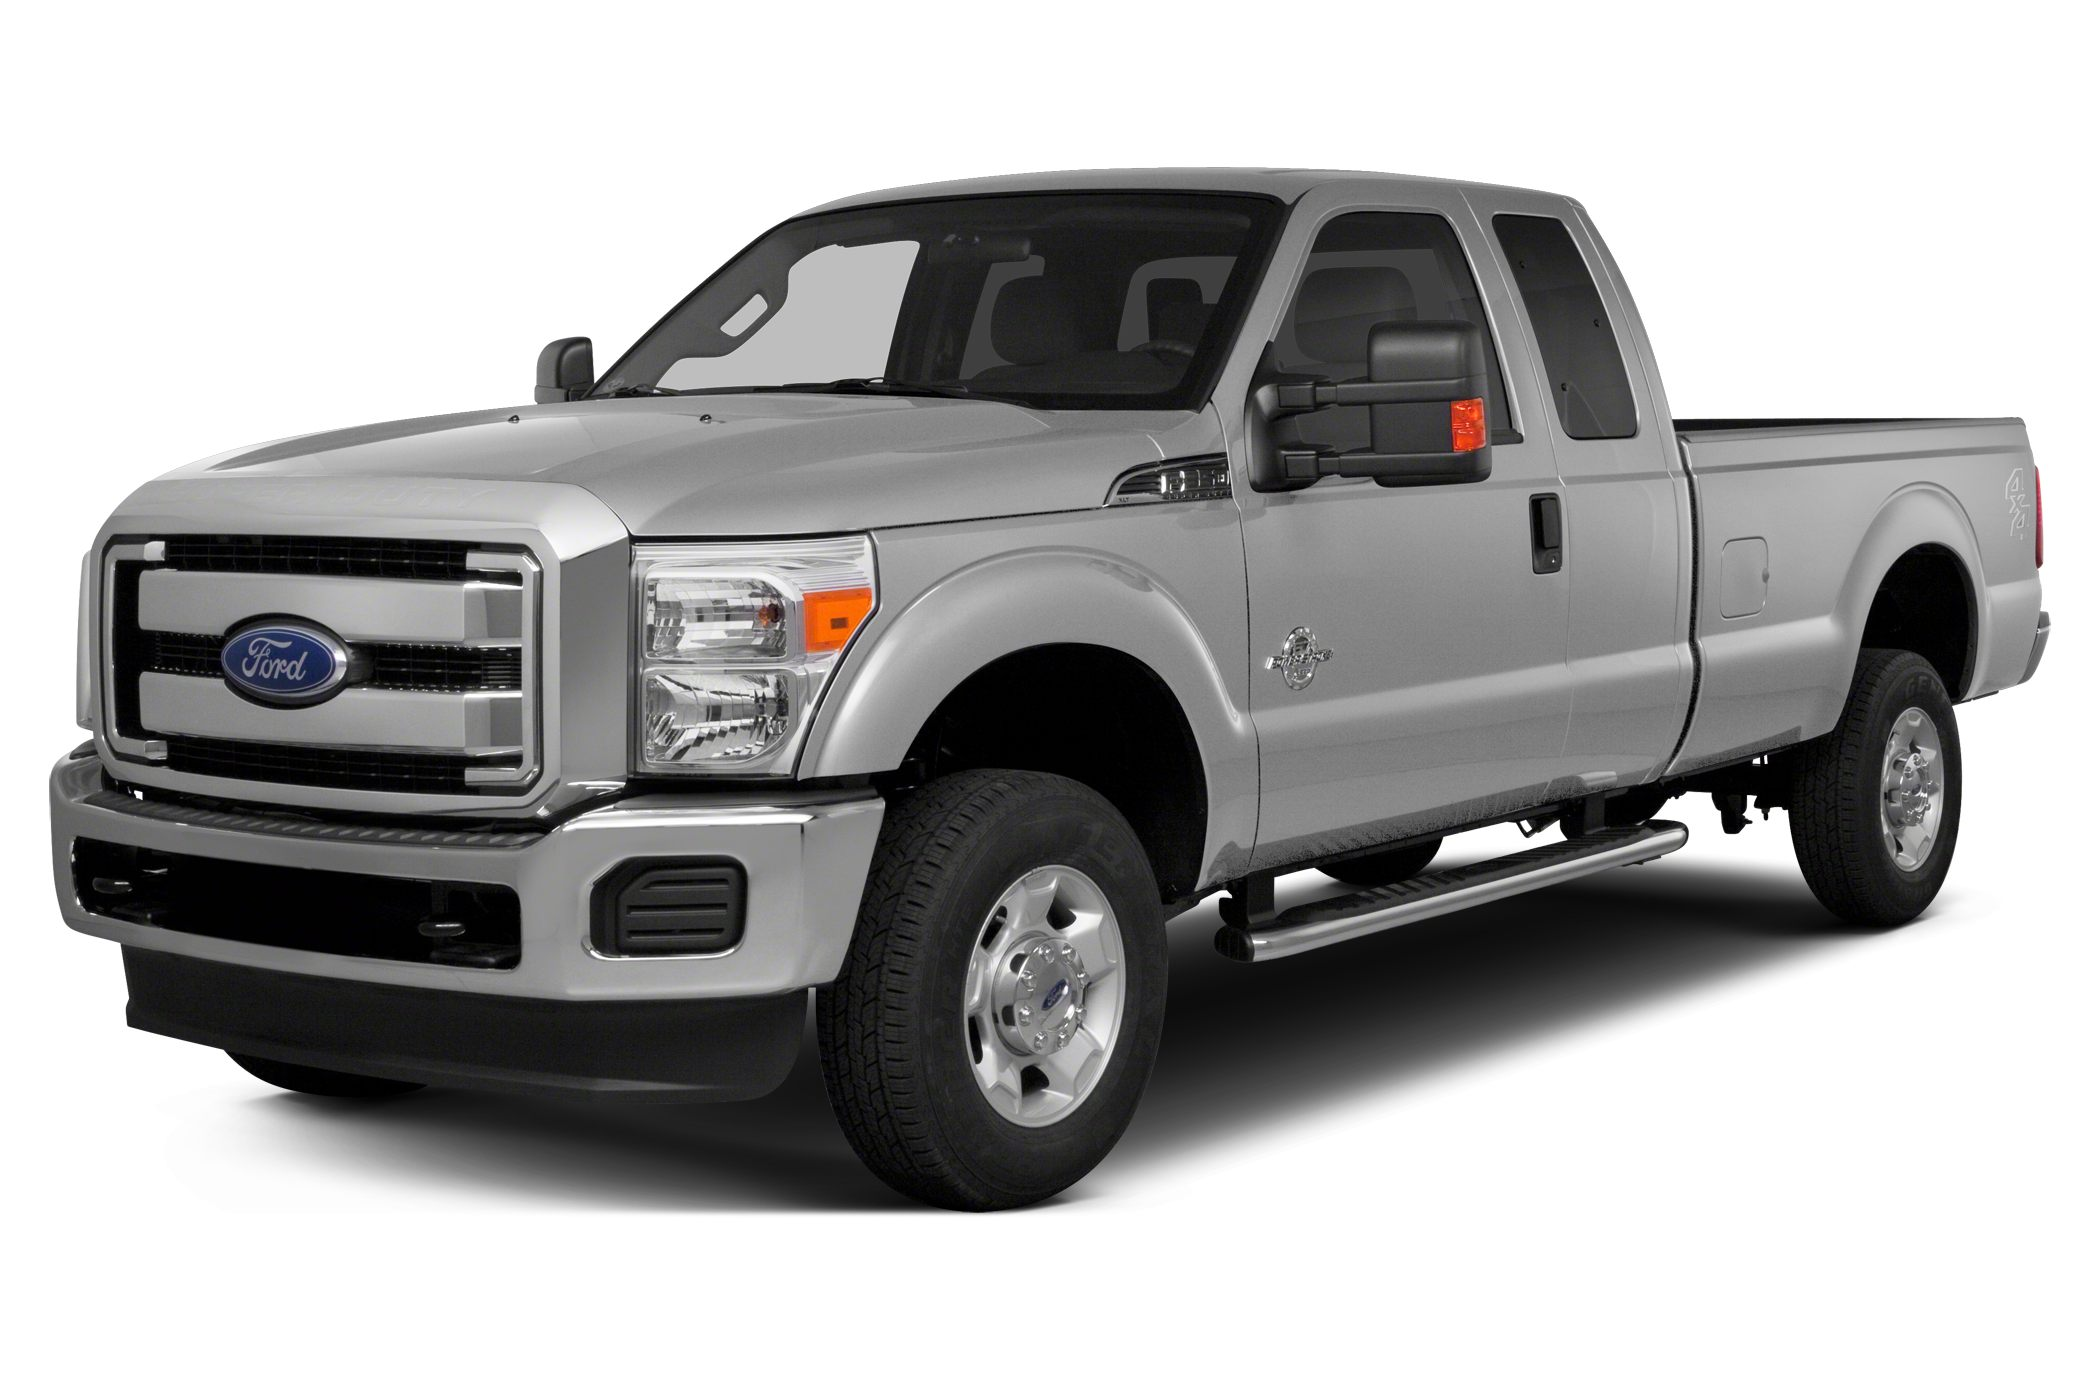 2015 Ford F350 Lariat Crew Cab Pickup for sale in Chantilly for $58,341 with 0 miles.